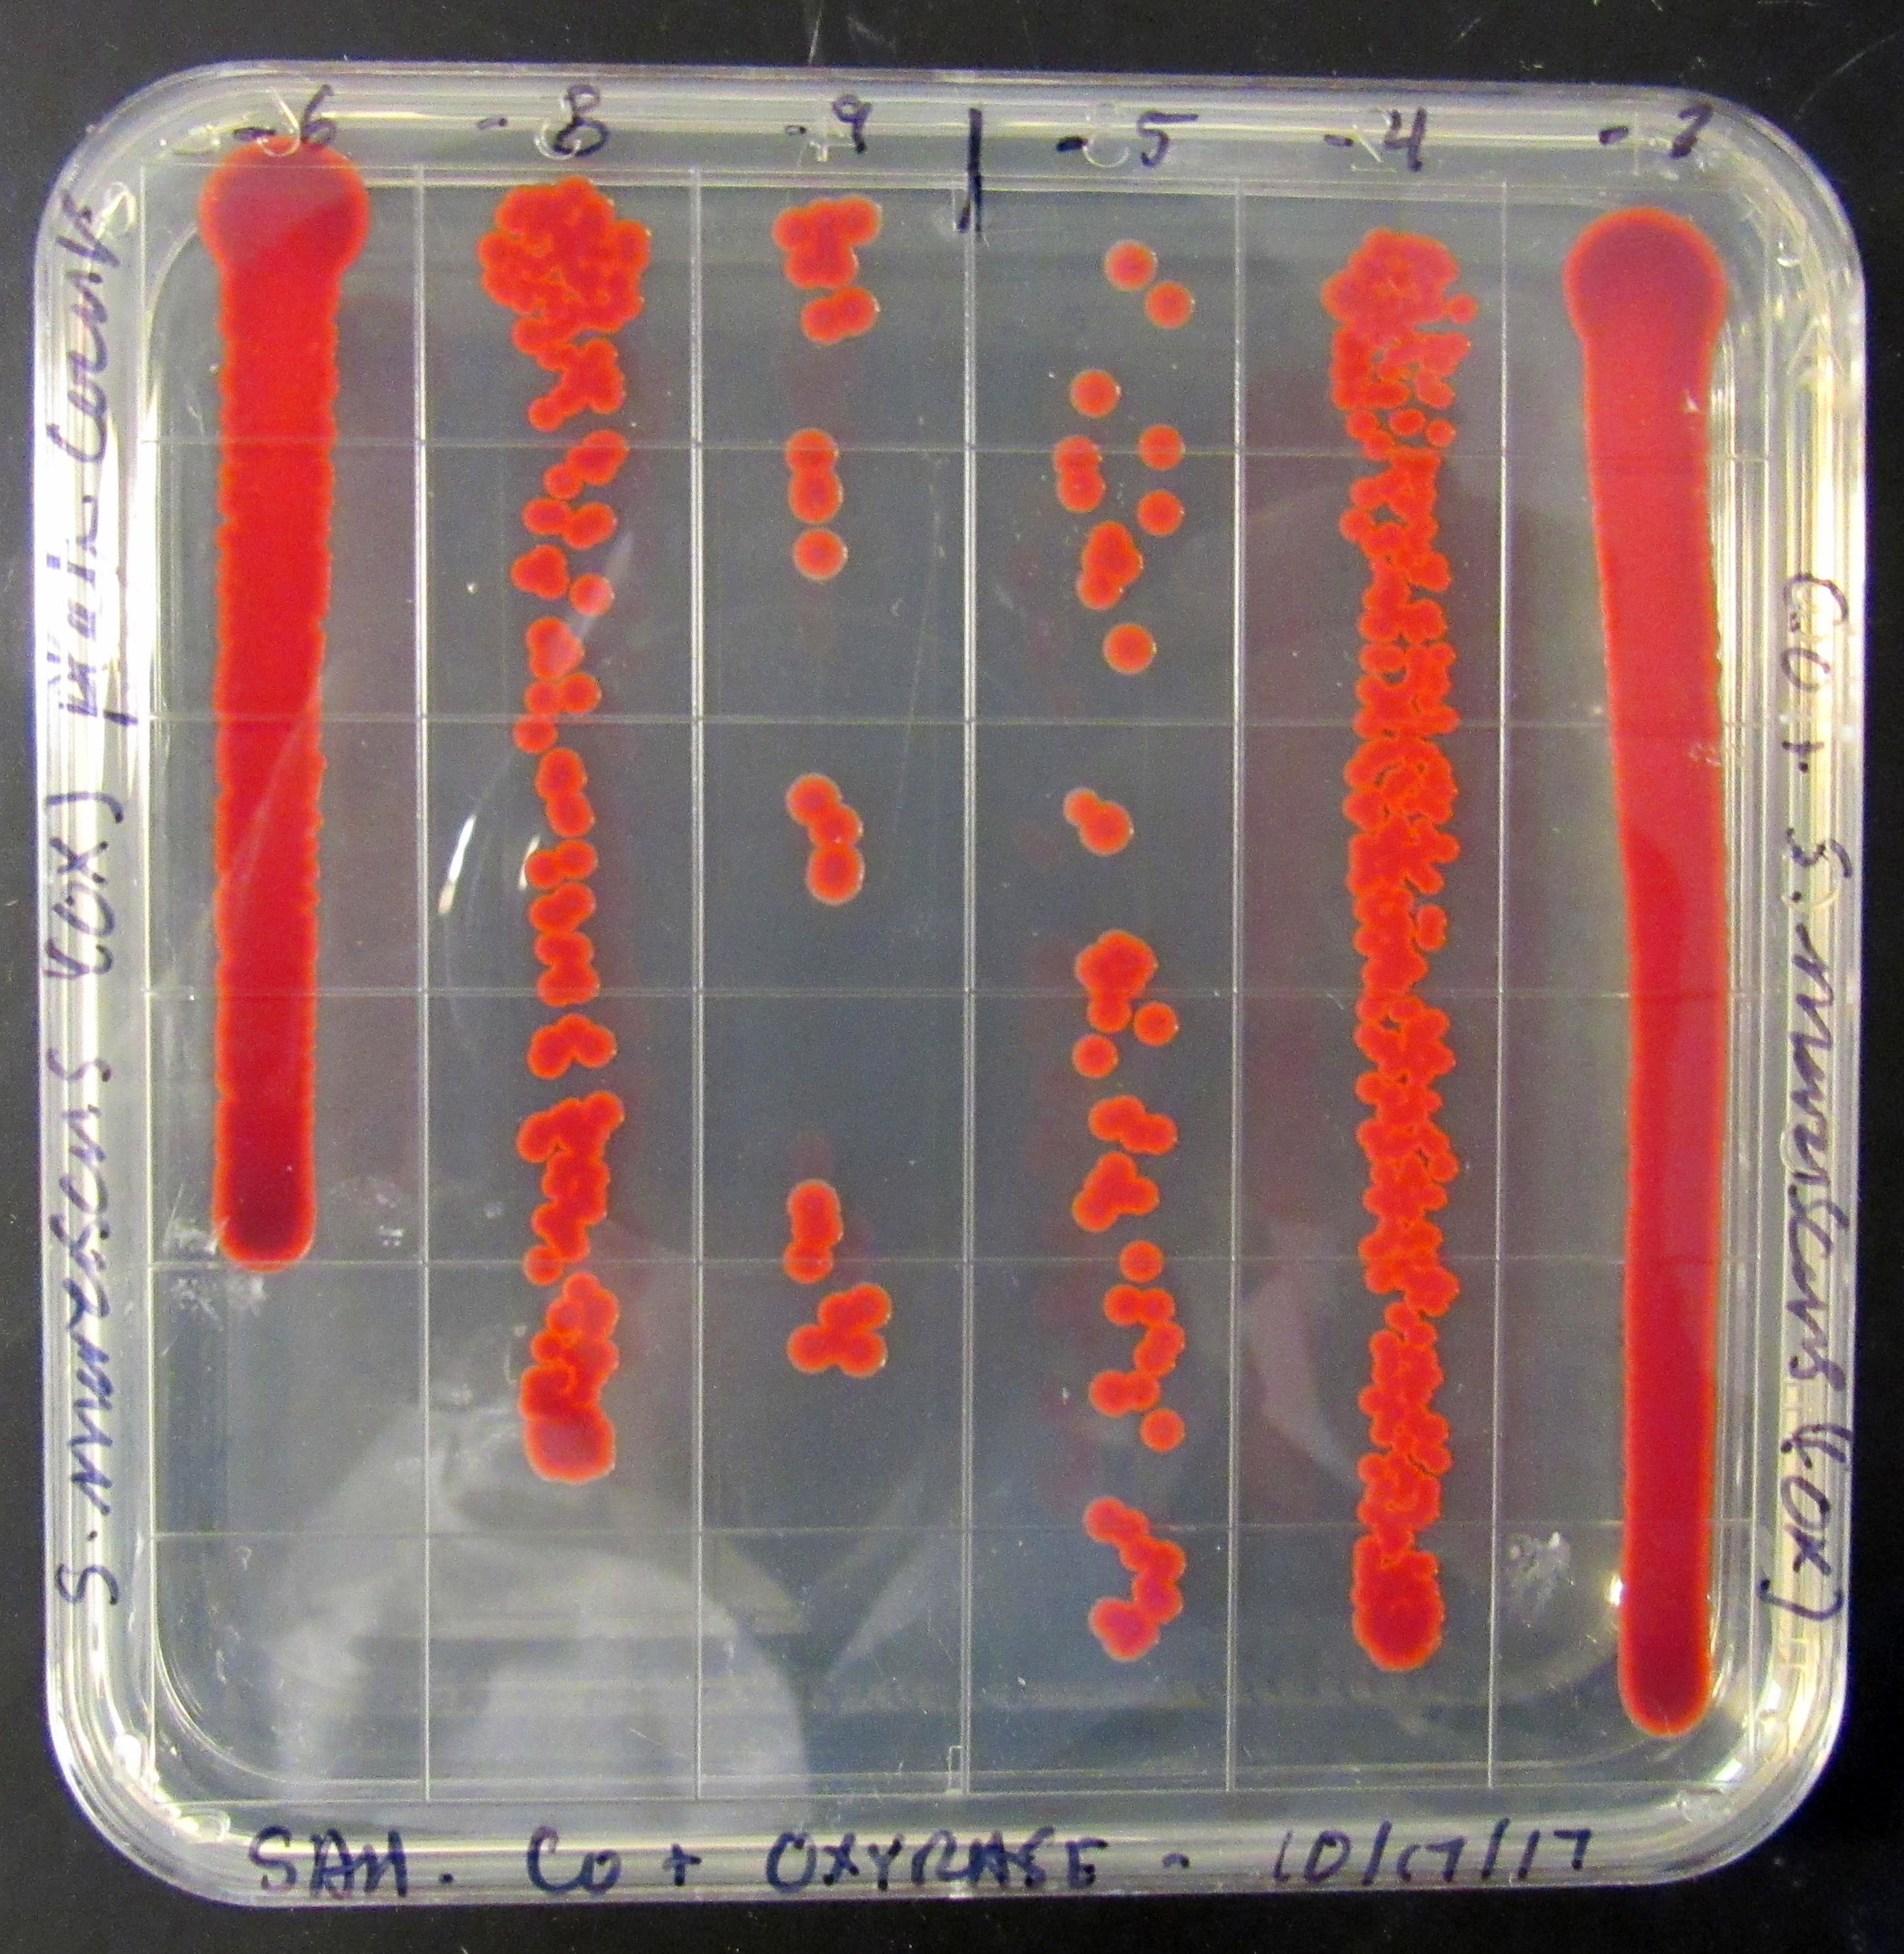 Serratia marcescens Square Plate